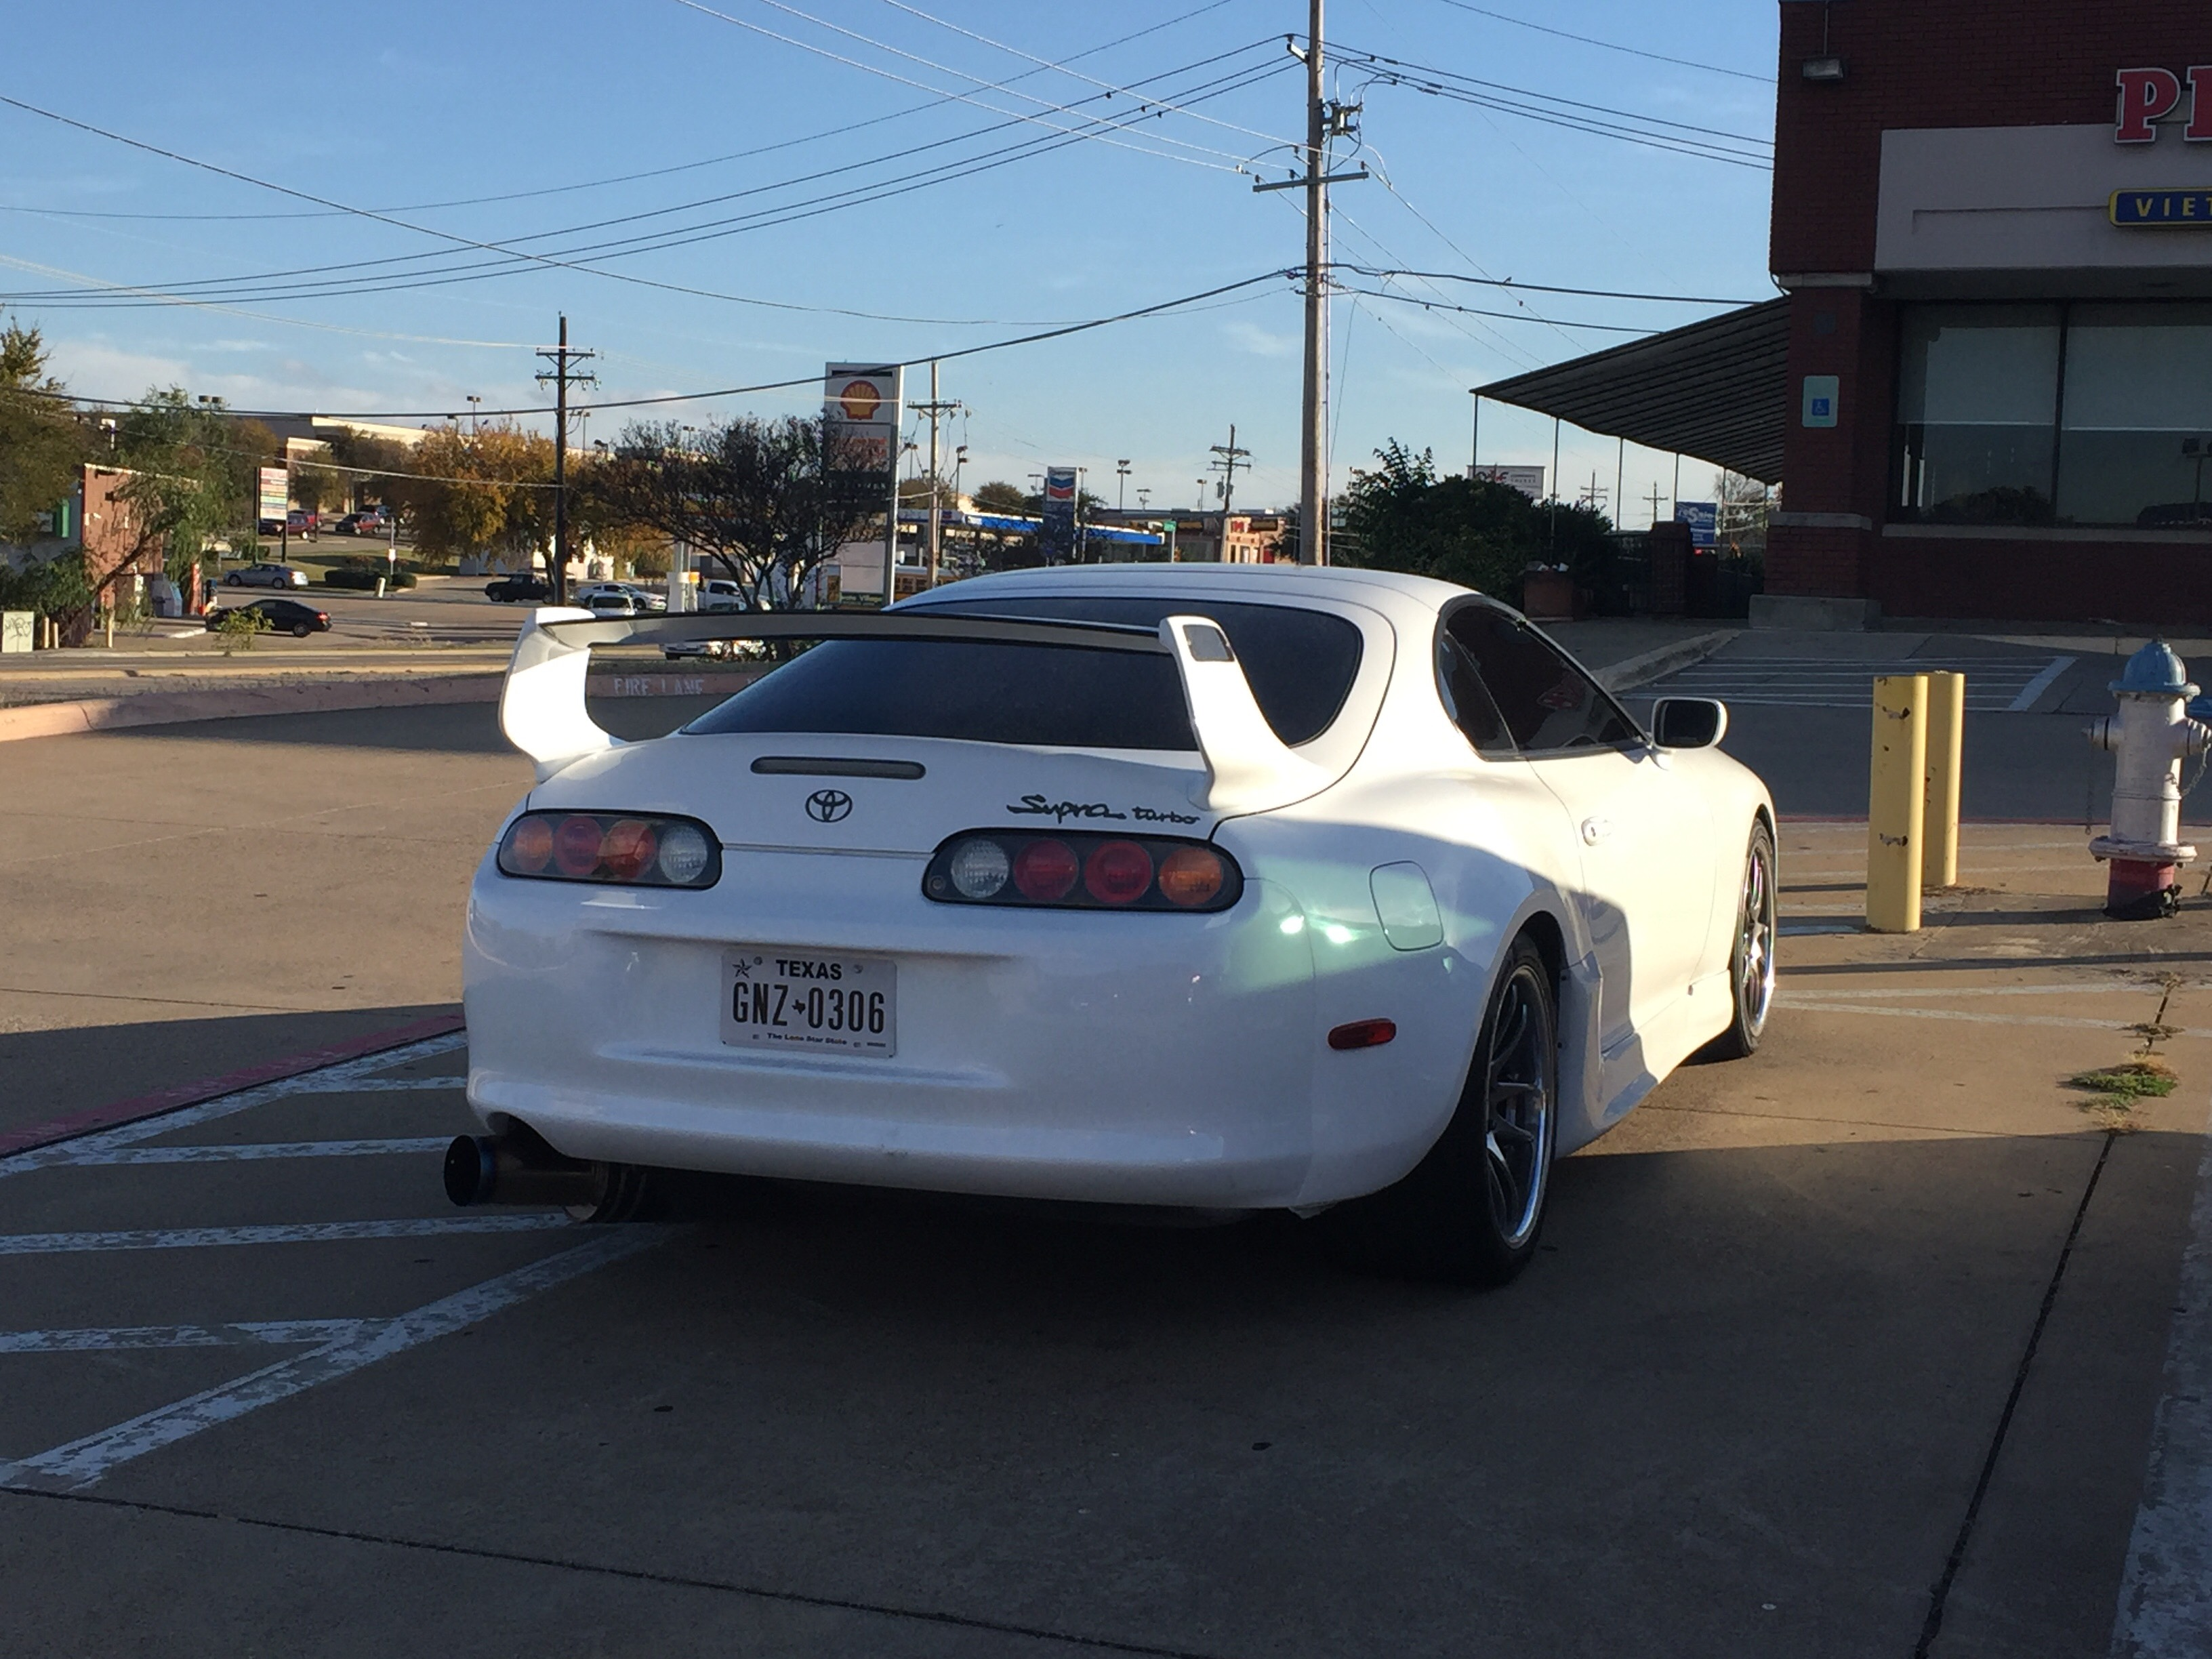 I Spotted This Clean Supra The Wild Today!   Car Spotting